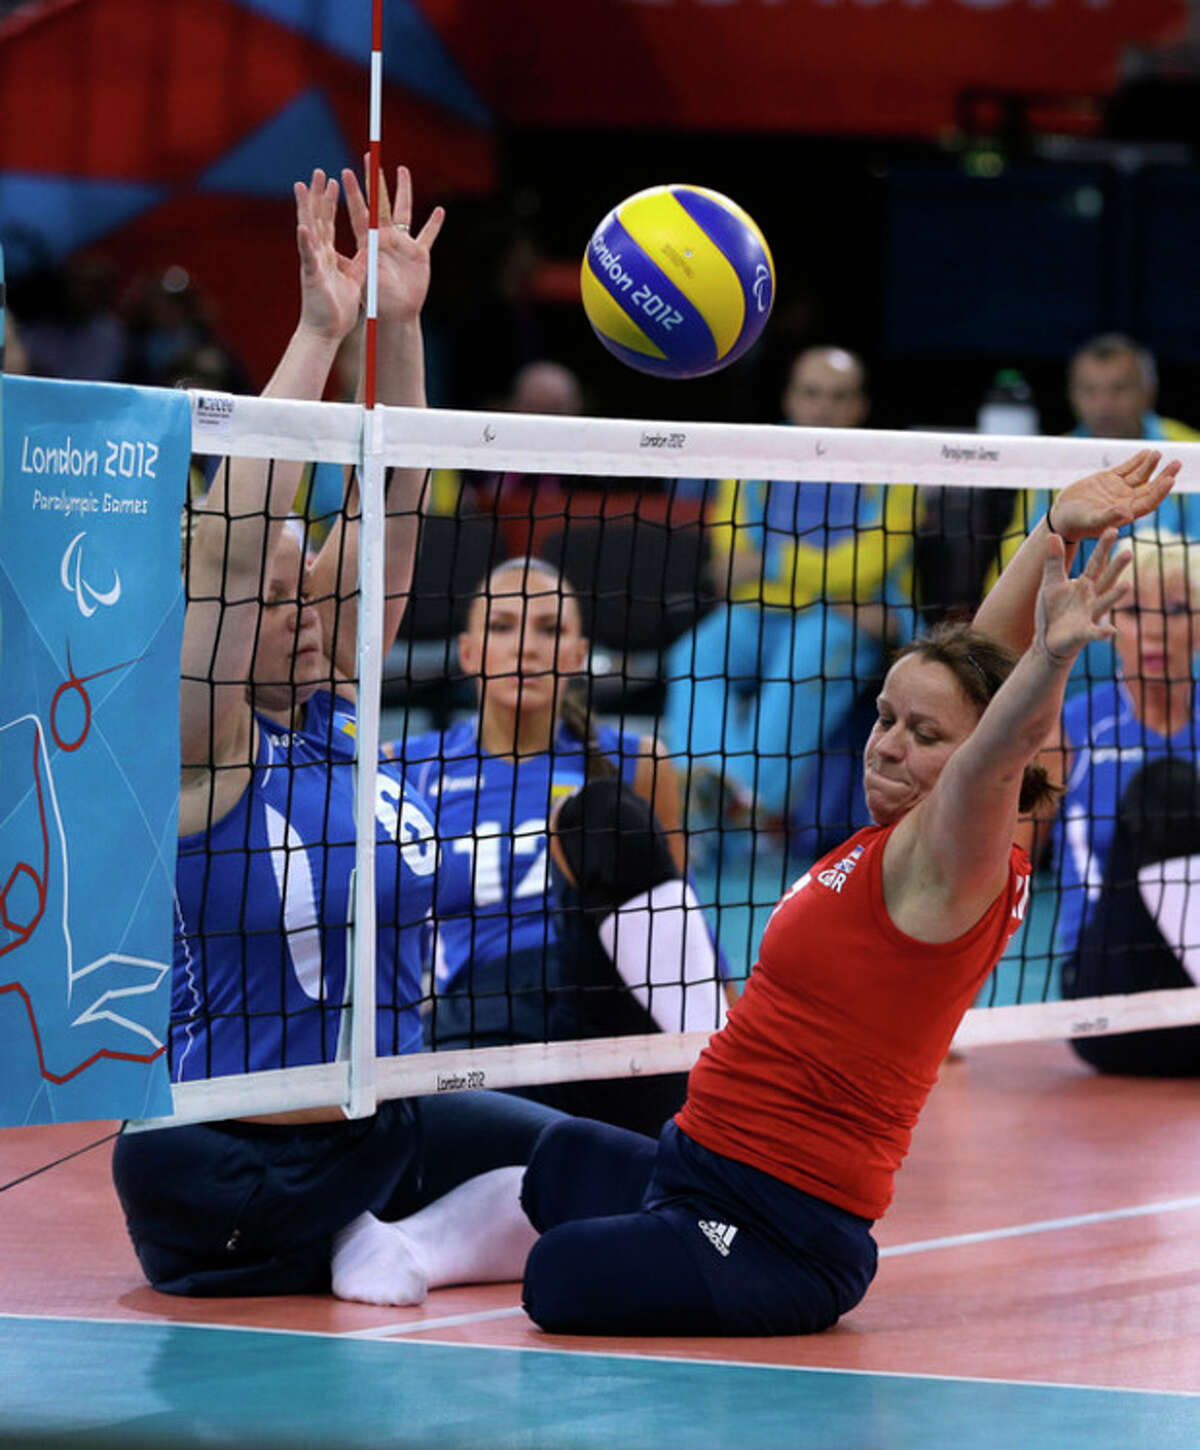 Martine Wright, right, of Britain fails to return the ball from Ilona Yudina, left, of Ukraine, during their women' sitting volleyball match at the 2012 Paralympics games, Friday, Aug. 31, 2012, in London. On July 7, 2005, four suicide bombers detonated explosives on London?'s transit system, killing 52 commuters and the four attackers. Wright was among the injured on 7/7, losing both her legs. Seven years later, she?'s been transformed into an athlete, a Paralympian.(AP Photo/Alastair Grant)